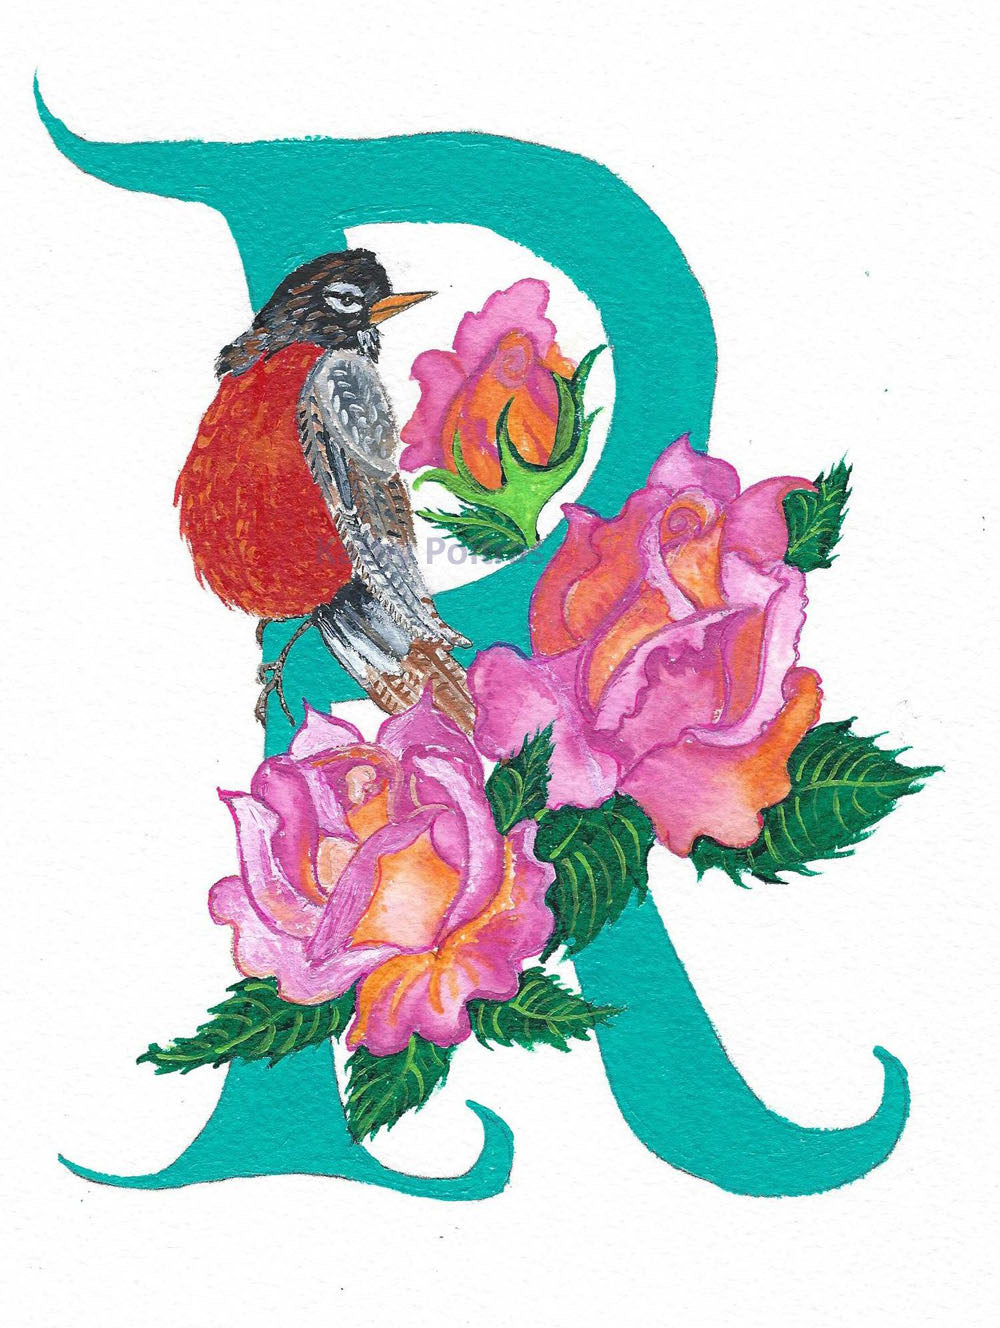 Illustrated Letter R for Robin and Roses